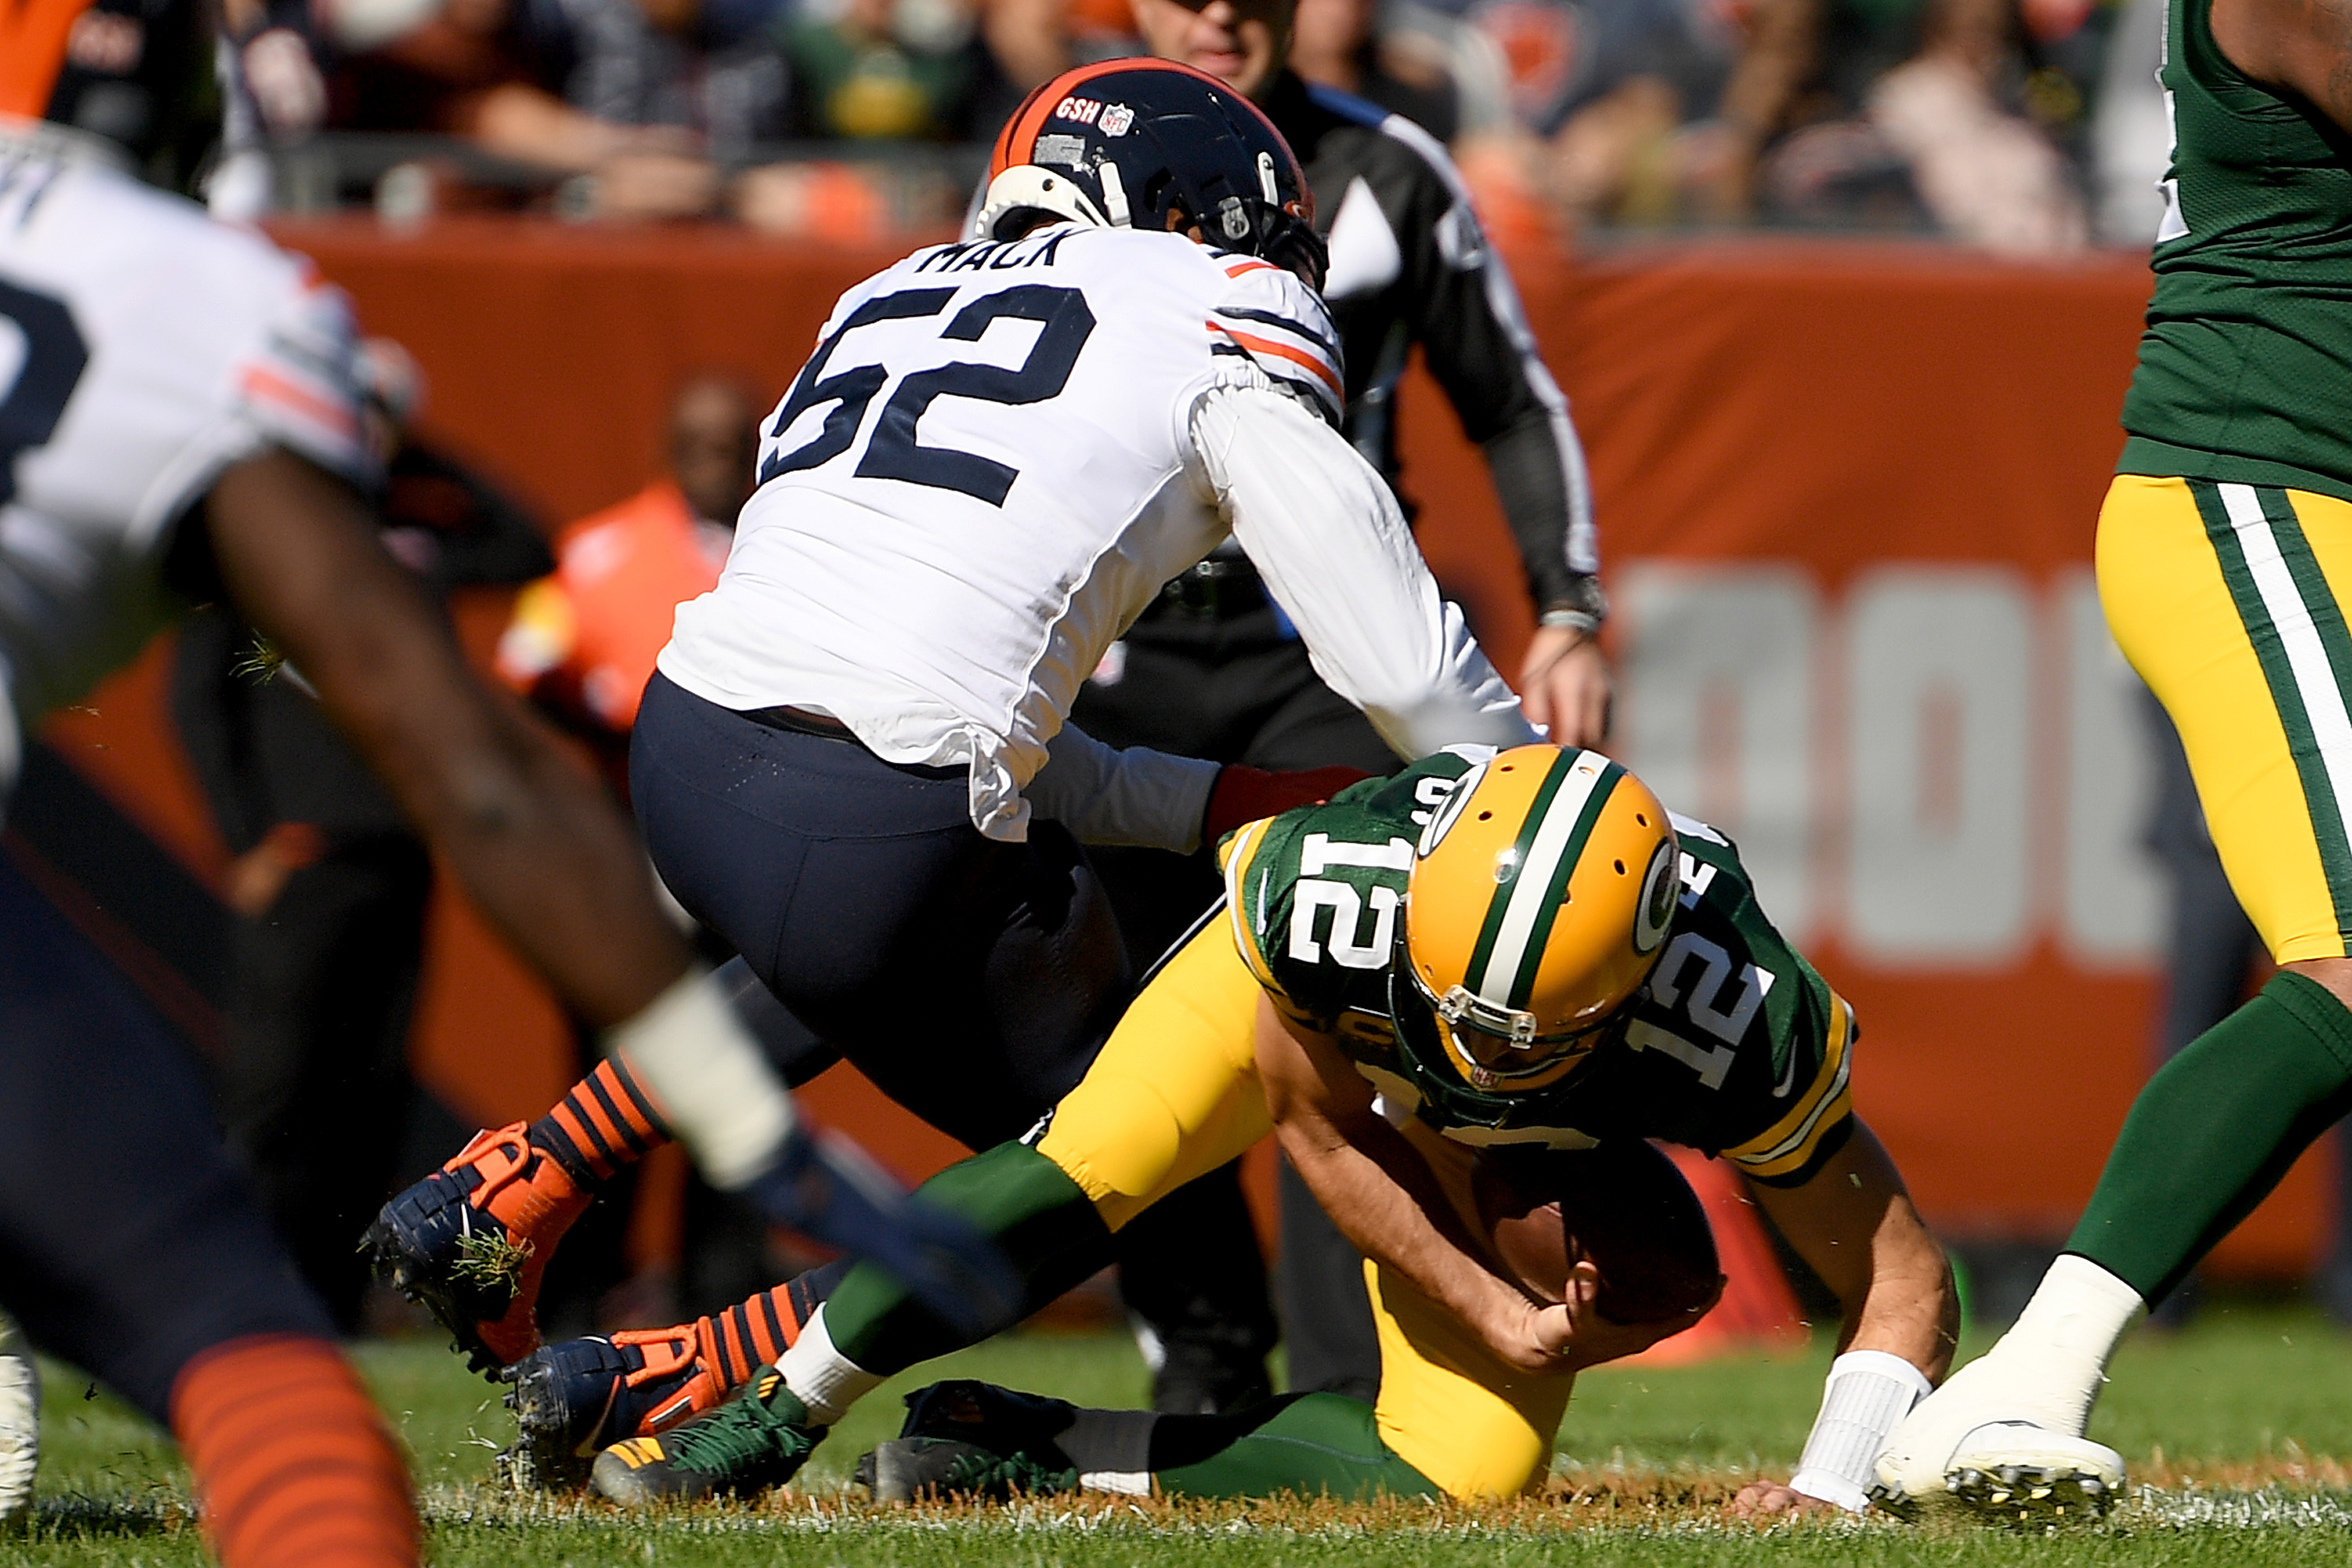 Aaron Rodgers #12 of the Green Bay Packers is sacked by Khalil Mack #52 of the Chicago Bears in the first quarter at Soldier Field on October 17, 2021 in Chicago, Illinois.